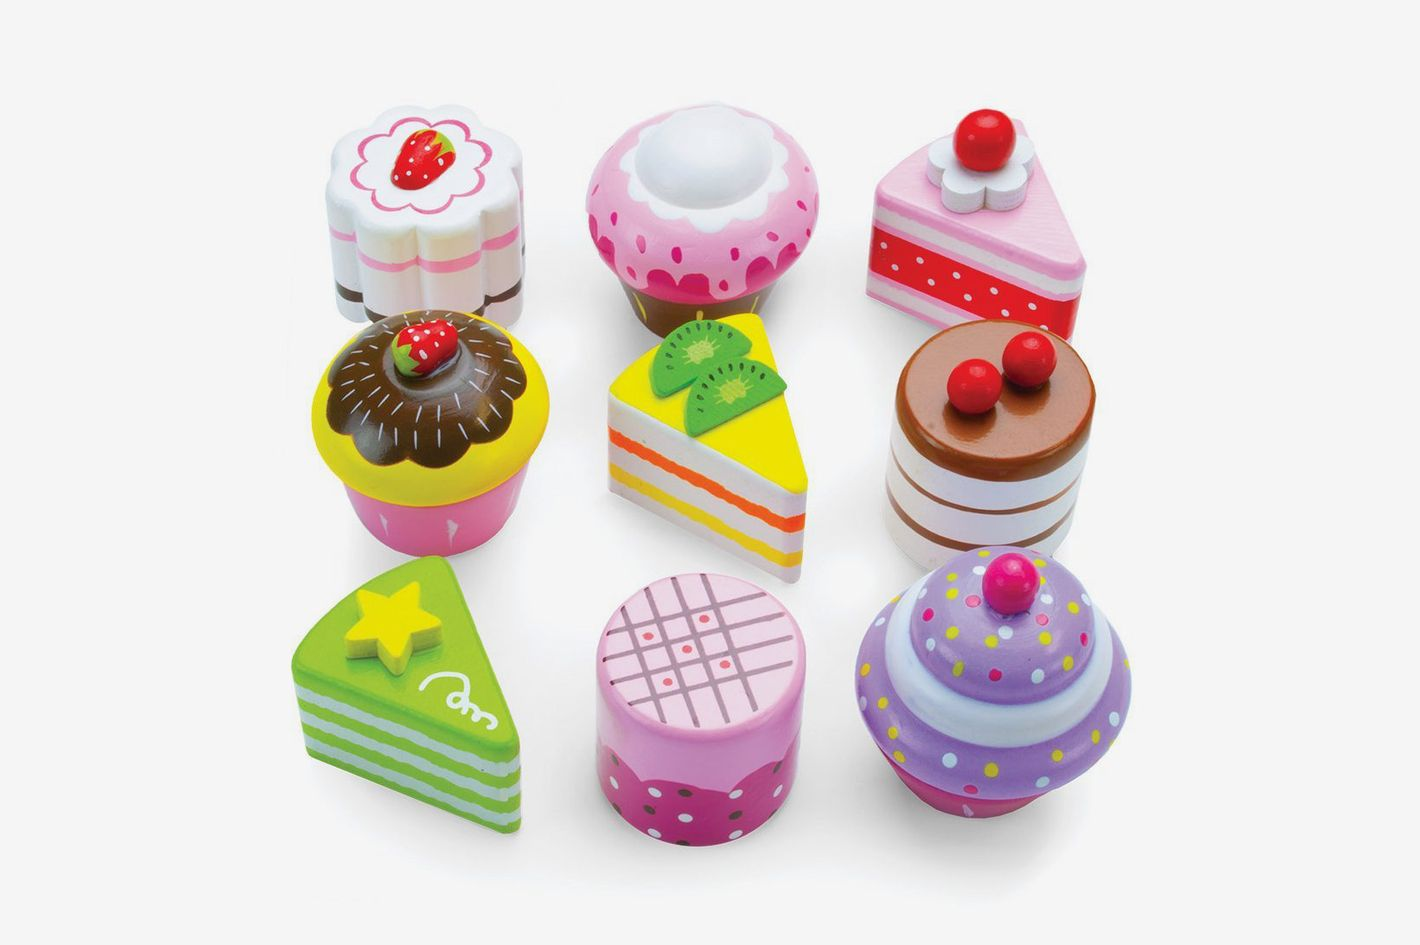 Wood Eats! Delectable Desserts Petit Fours (9pcs.)